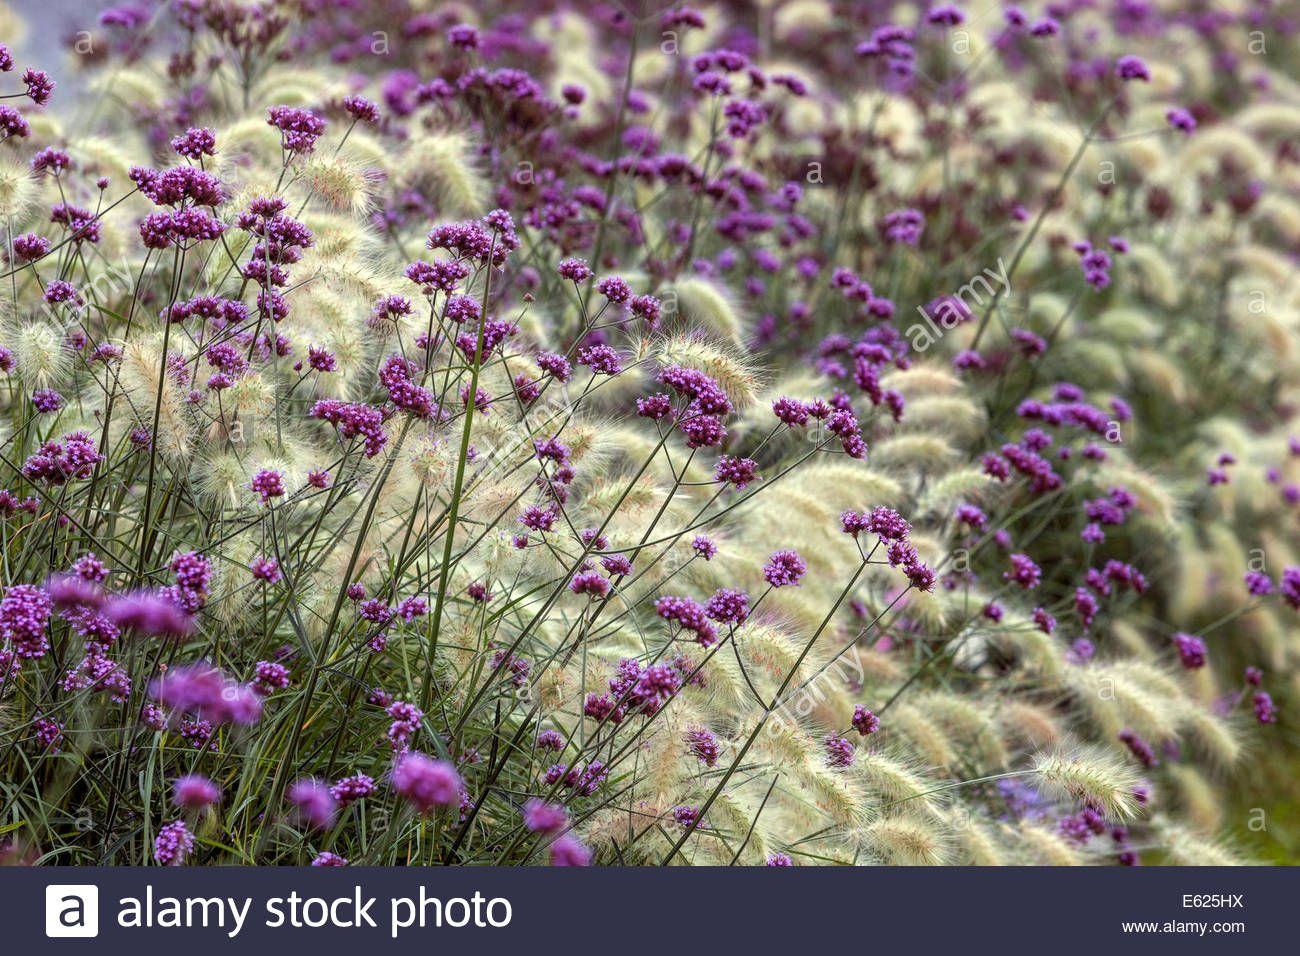 Colorful flower bed of annual flowers pennisetum verbena bonariensis colorful flower bed of annual flowers pennisetum verbena bonariensis stock photo royalty free image izmirmasajfo Image collections